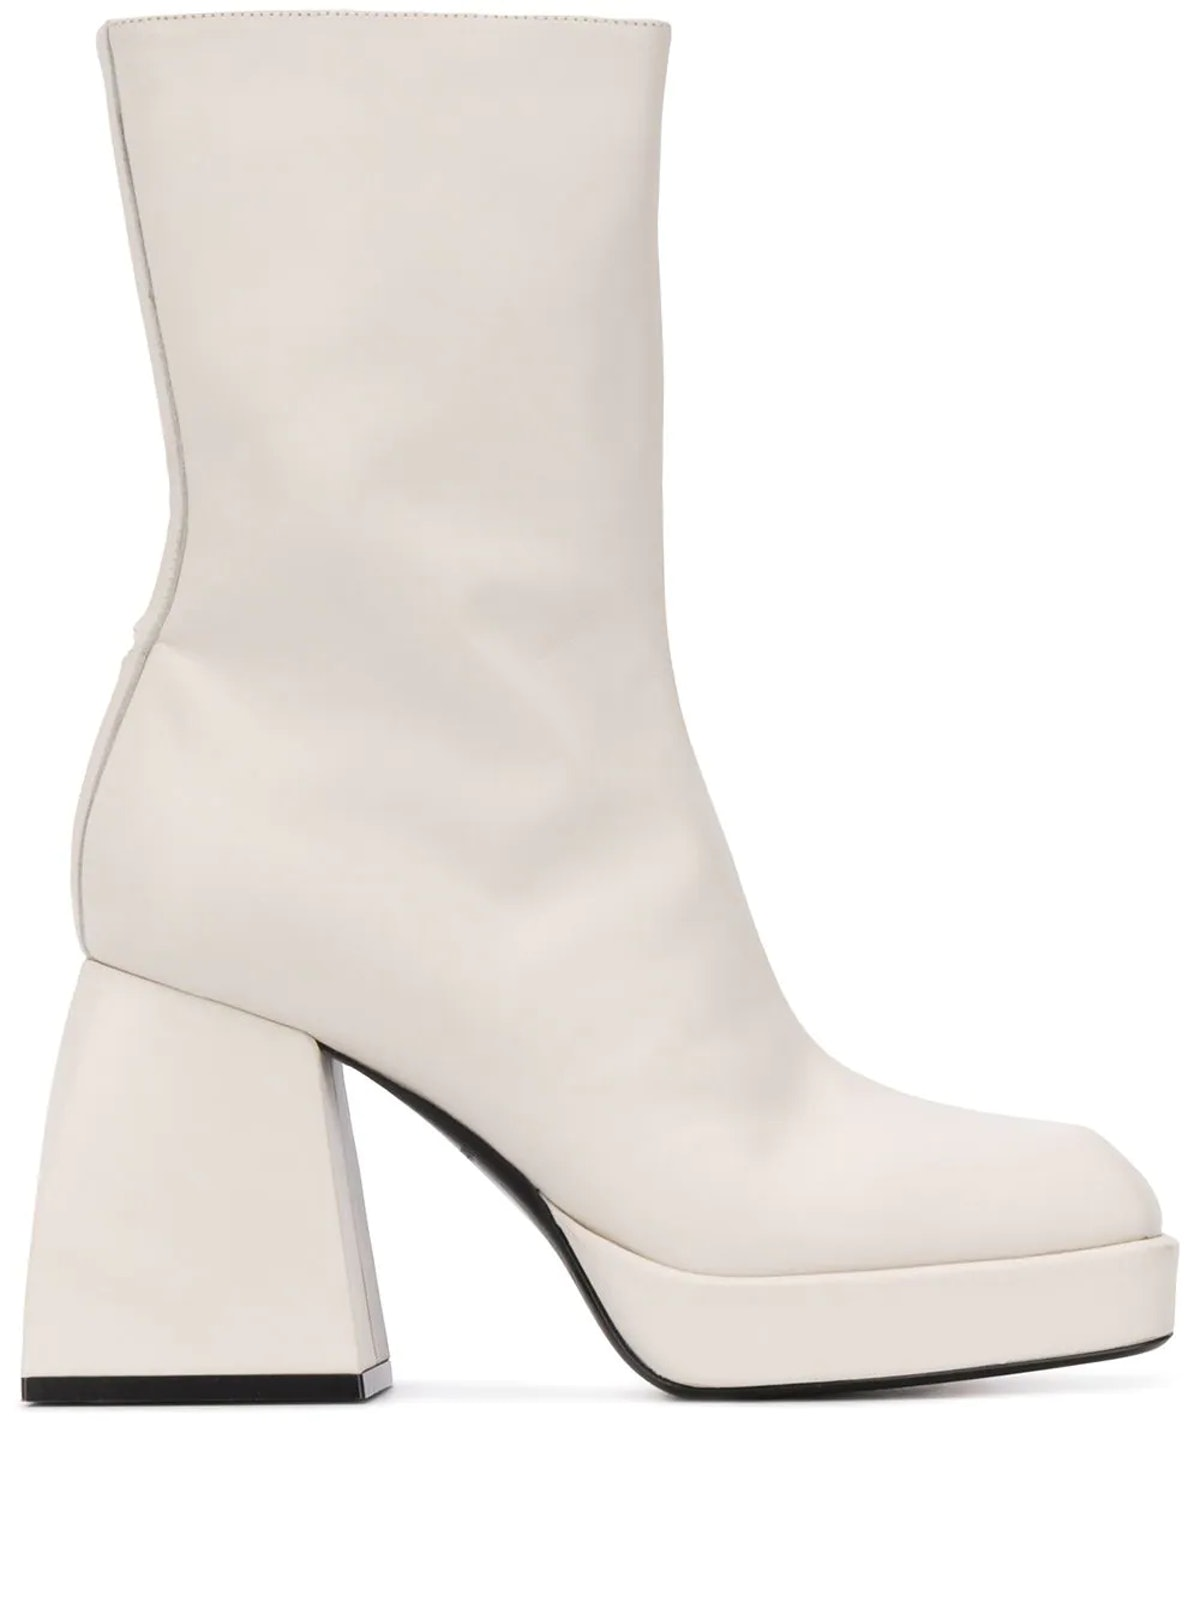 White square-toe heeled boots from Nodaleto, available to shop on Farfetch.